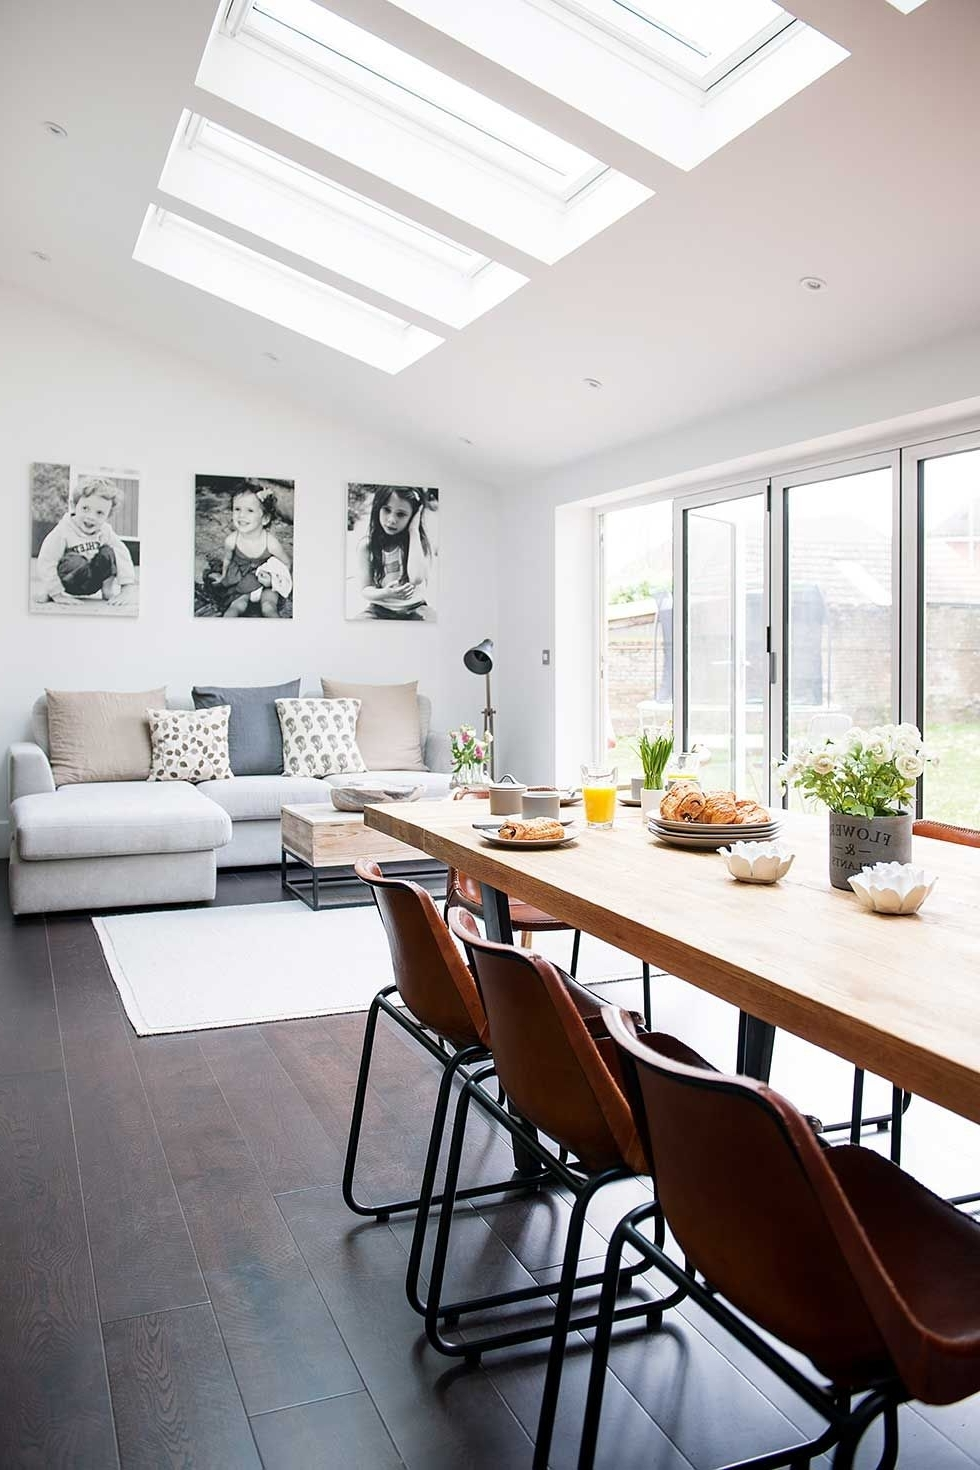 Industrial Kitchen Extension Dining Living Rooflights With Sofa In Most Up To Date Sofas For Kitchen Diner (View 2 of 15)